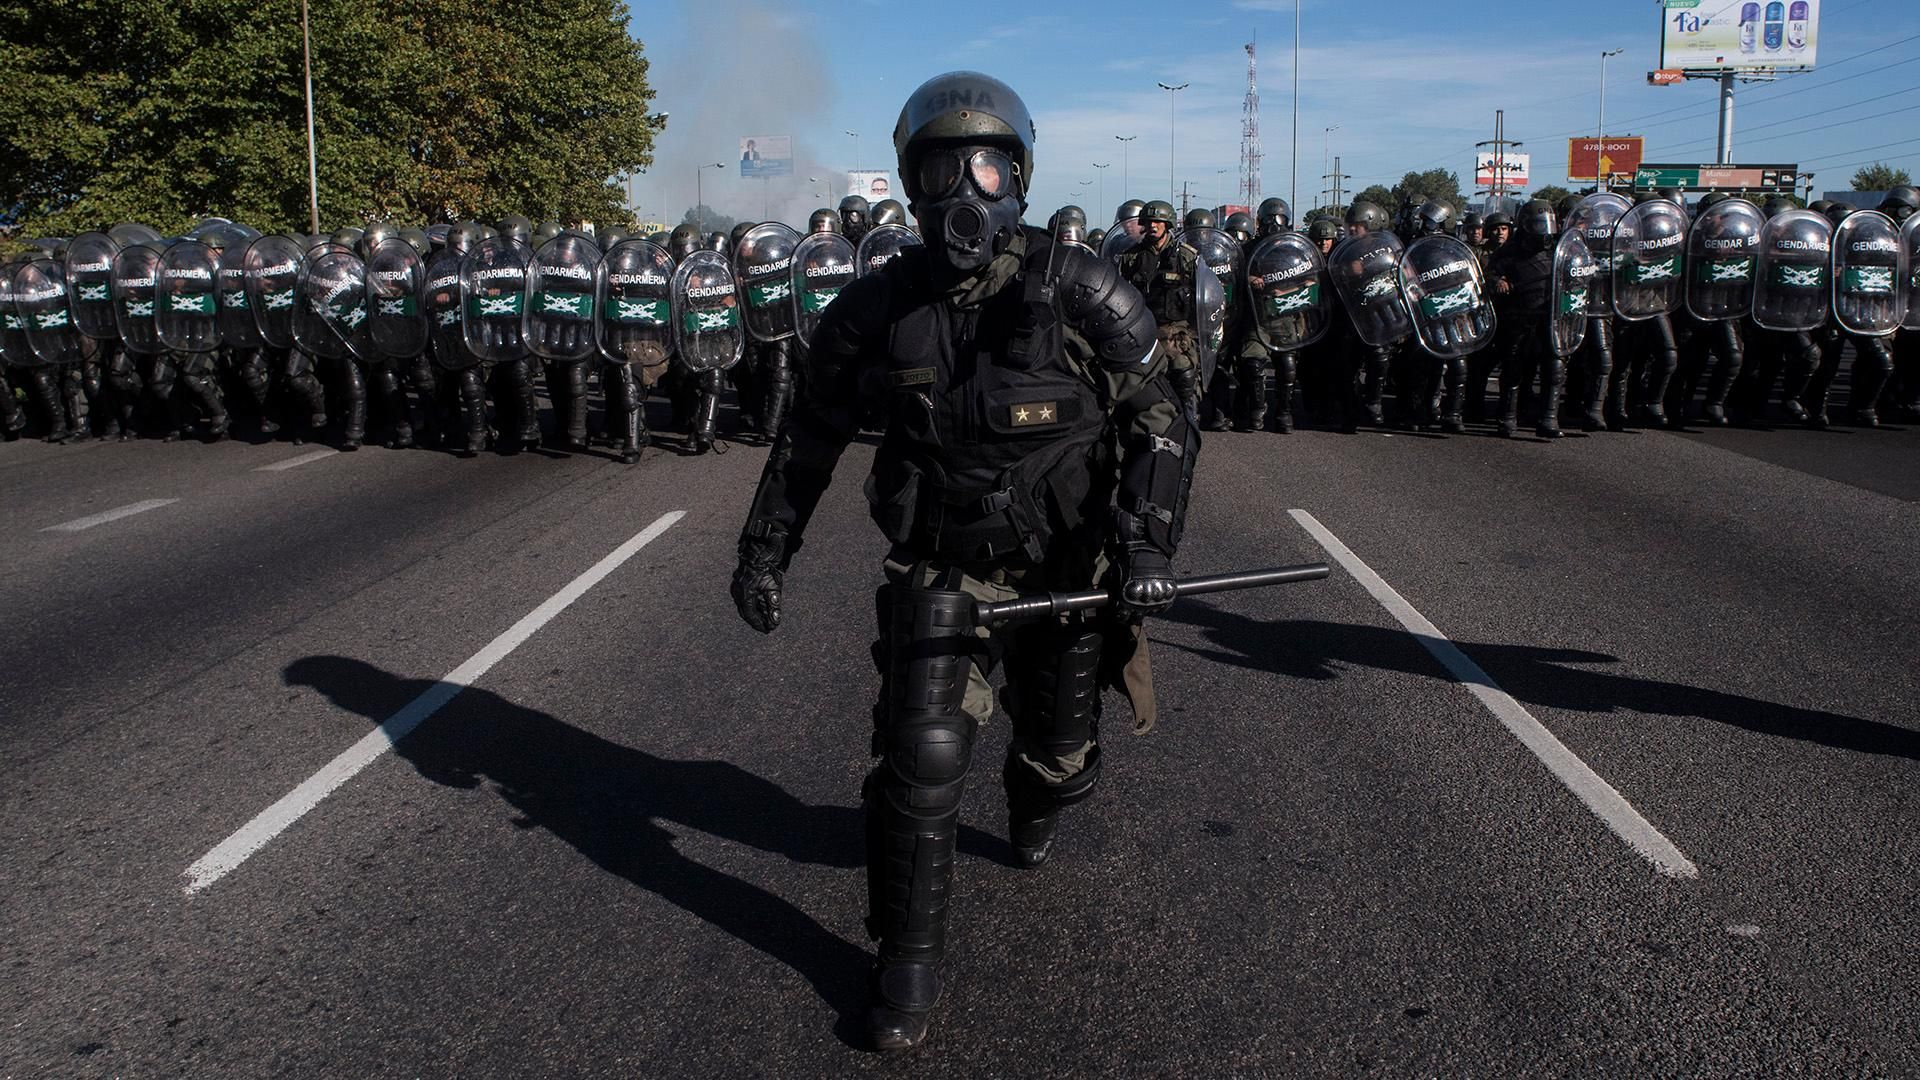 riot control during protest in argentina april 6 2017 [1920x1080